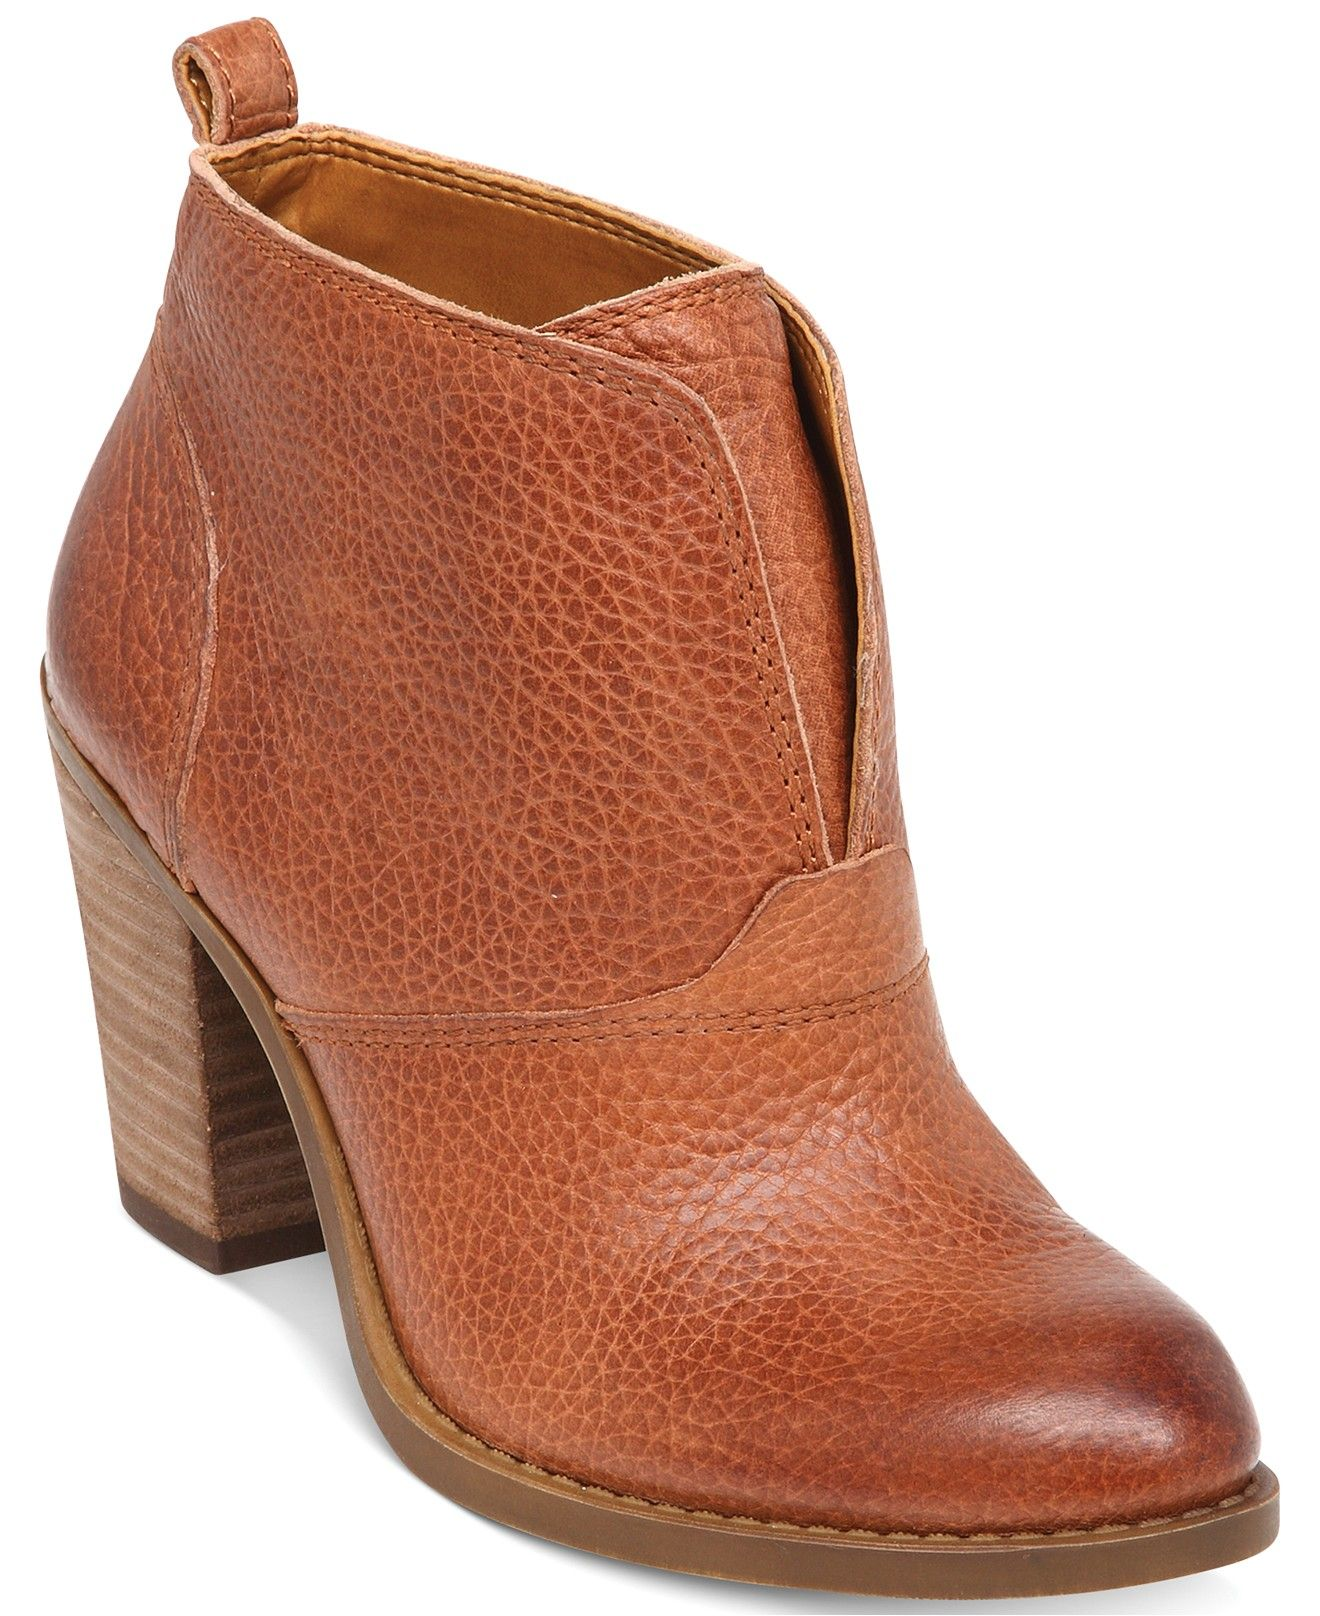 Lucky Brand Women's Ehllen Booties - All Women's Shoes - Shoes - Macy's